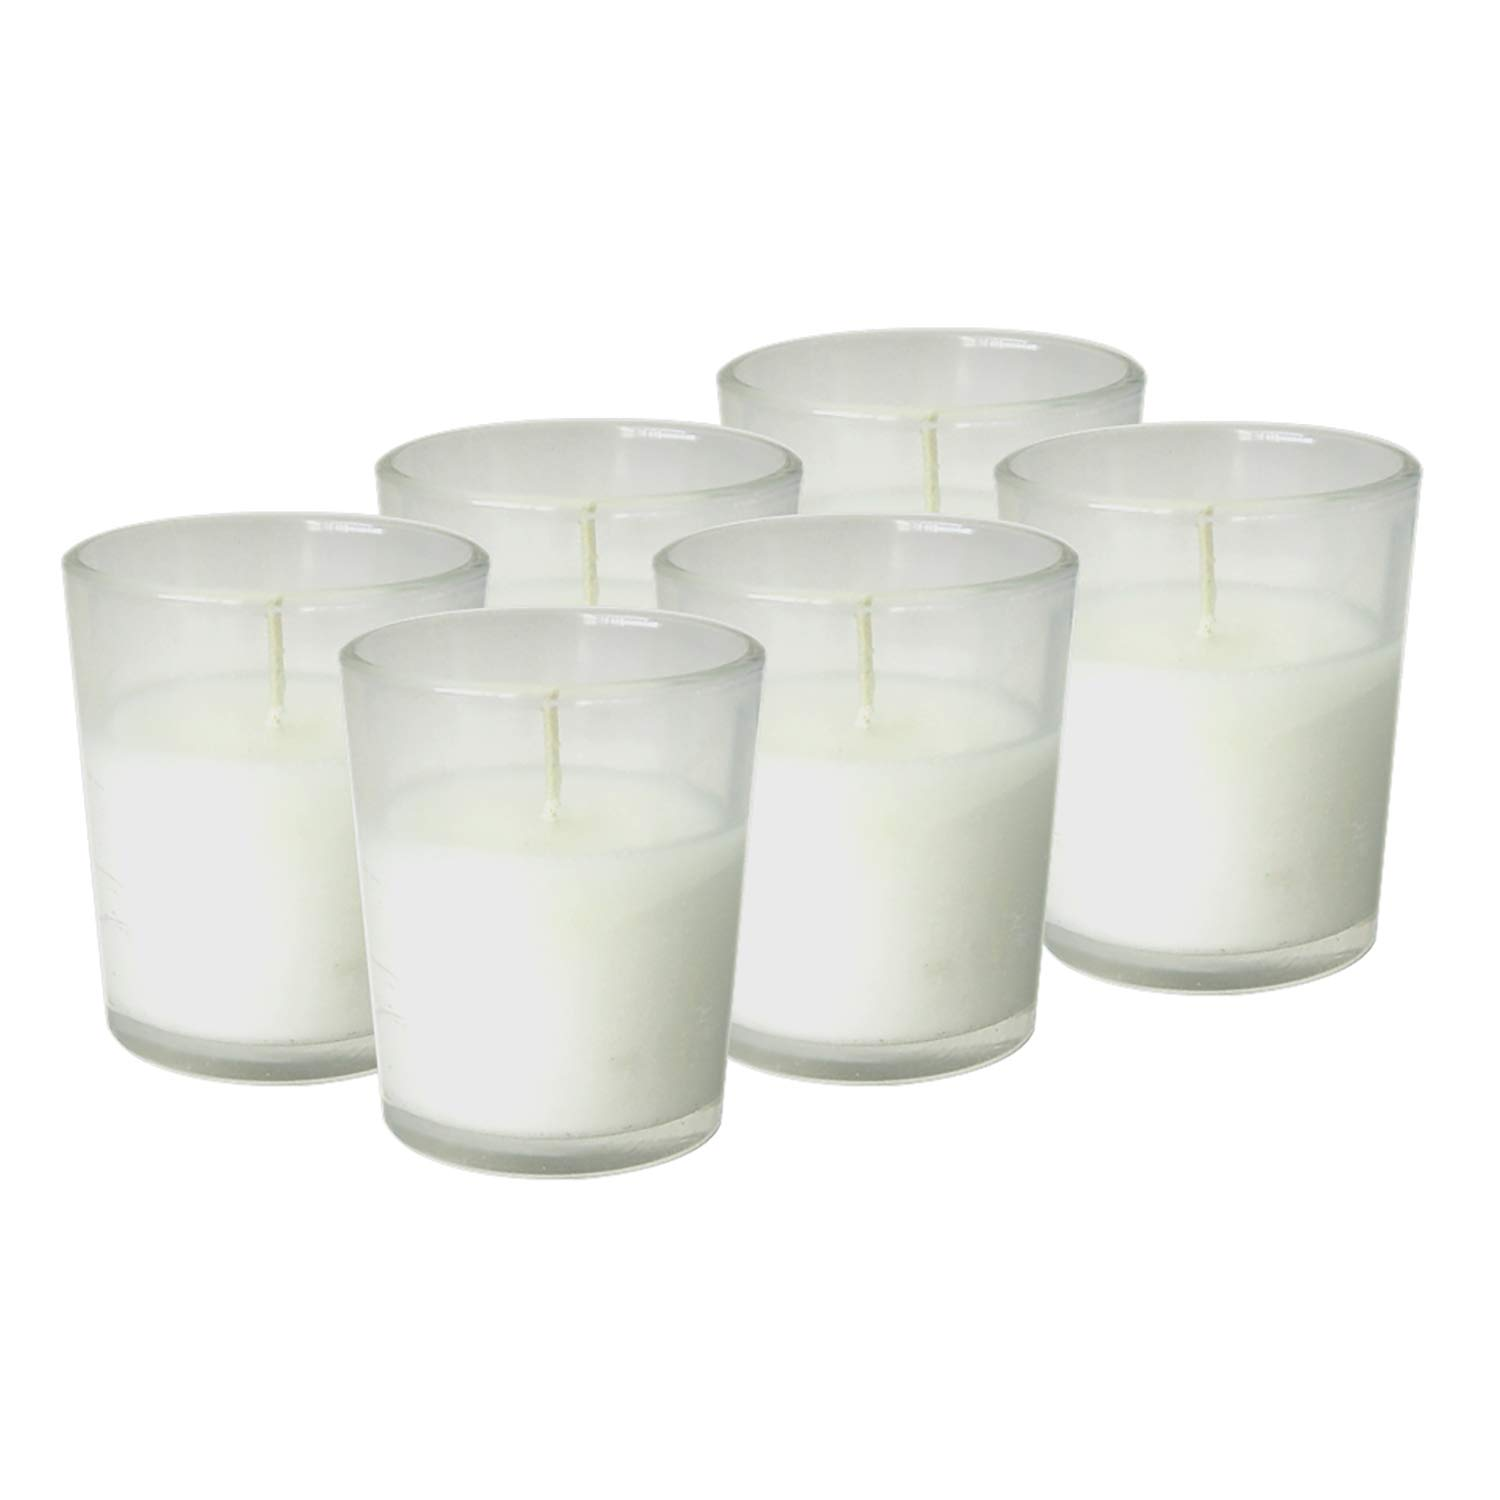 Simply Soson 48 Unscented Votive Candles in Glass | Wax Filled White Candles in Glass | 15 Hour Burn Time Votive Candles Bulk | Improved Packaging (48 Pack) Code 2274